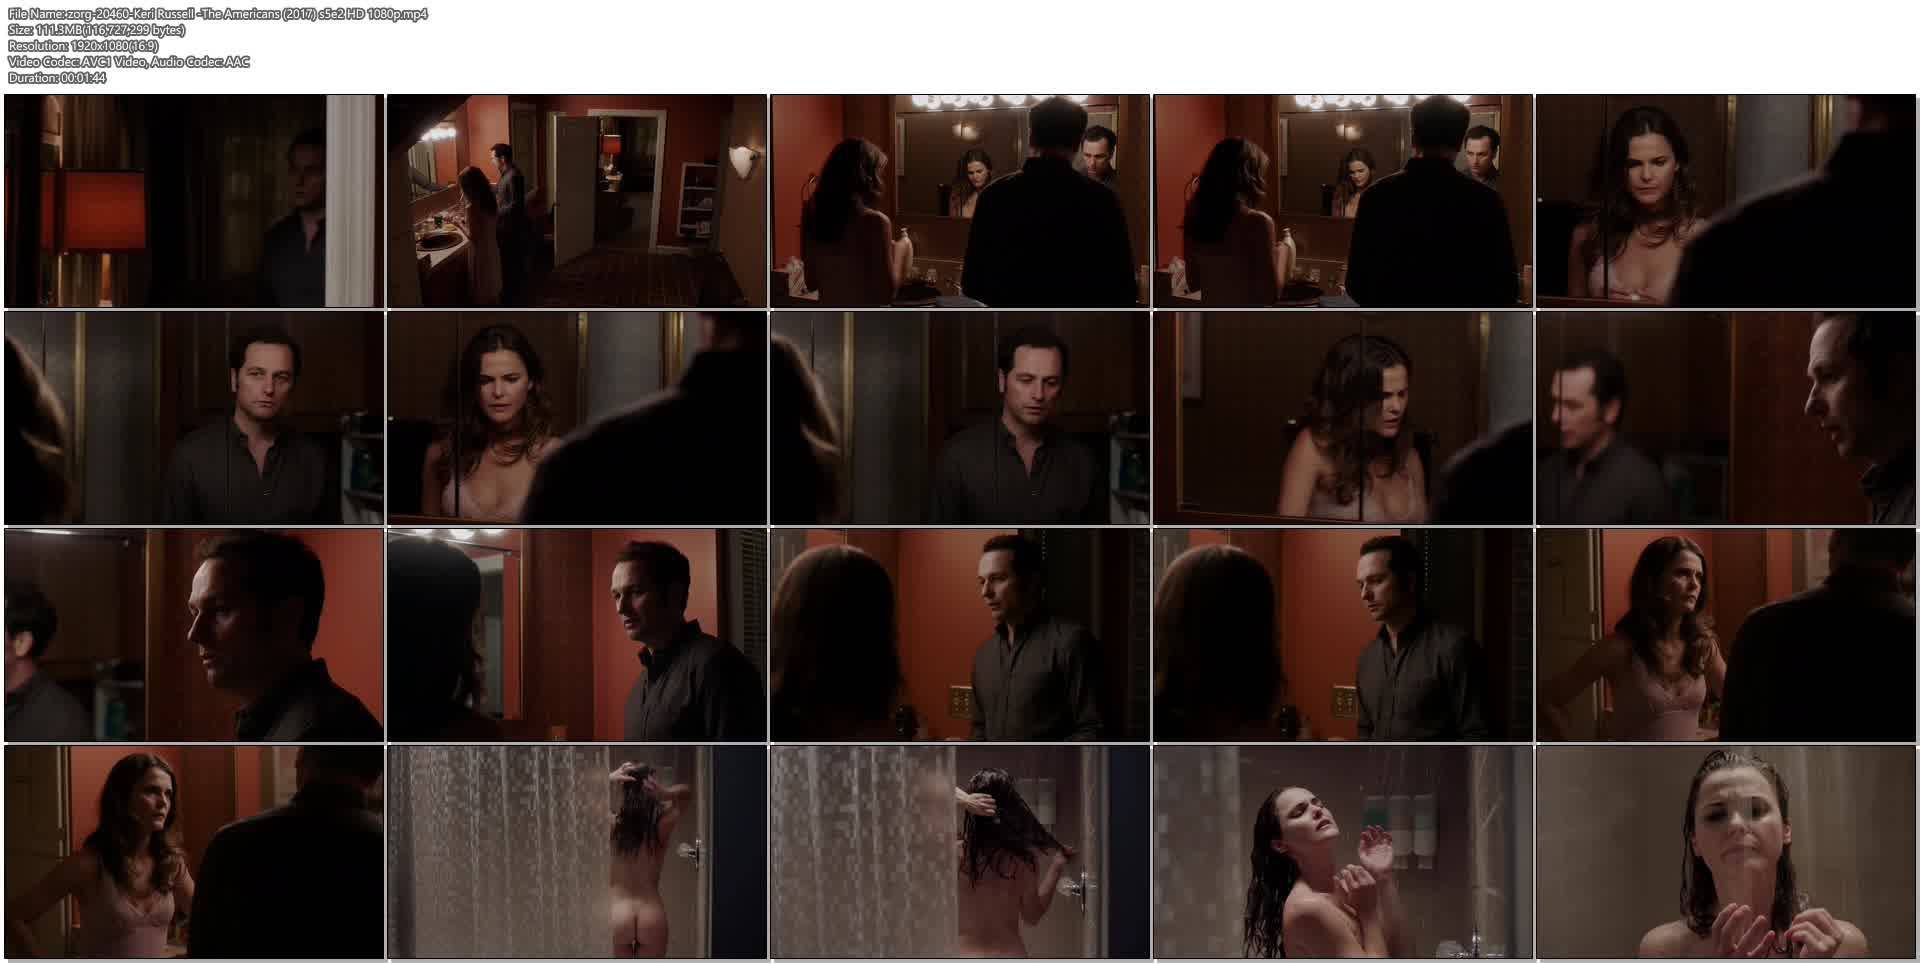 Keri Russell nude butt in the shower -The Americans (2017) s5e2 HD 1080p (7)